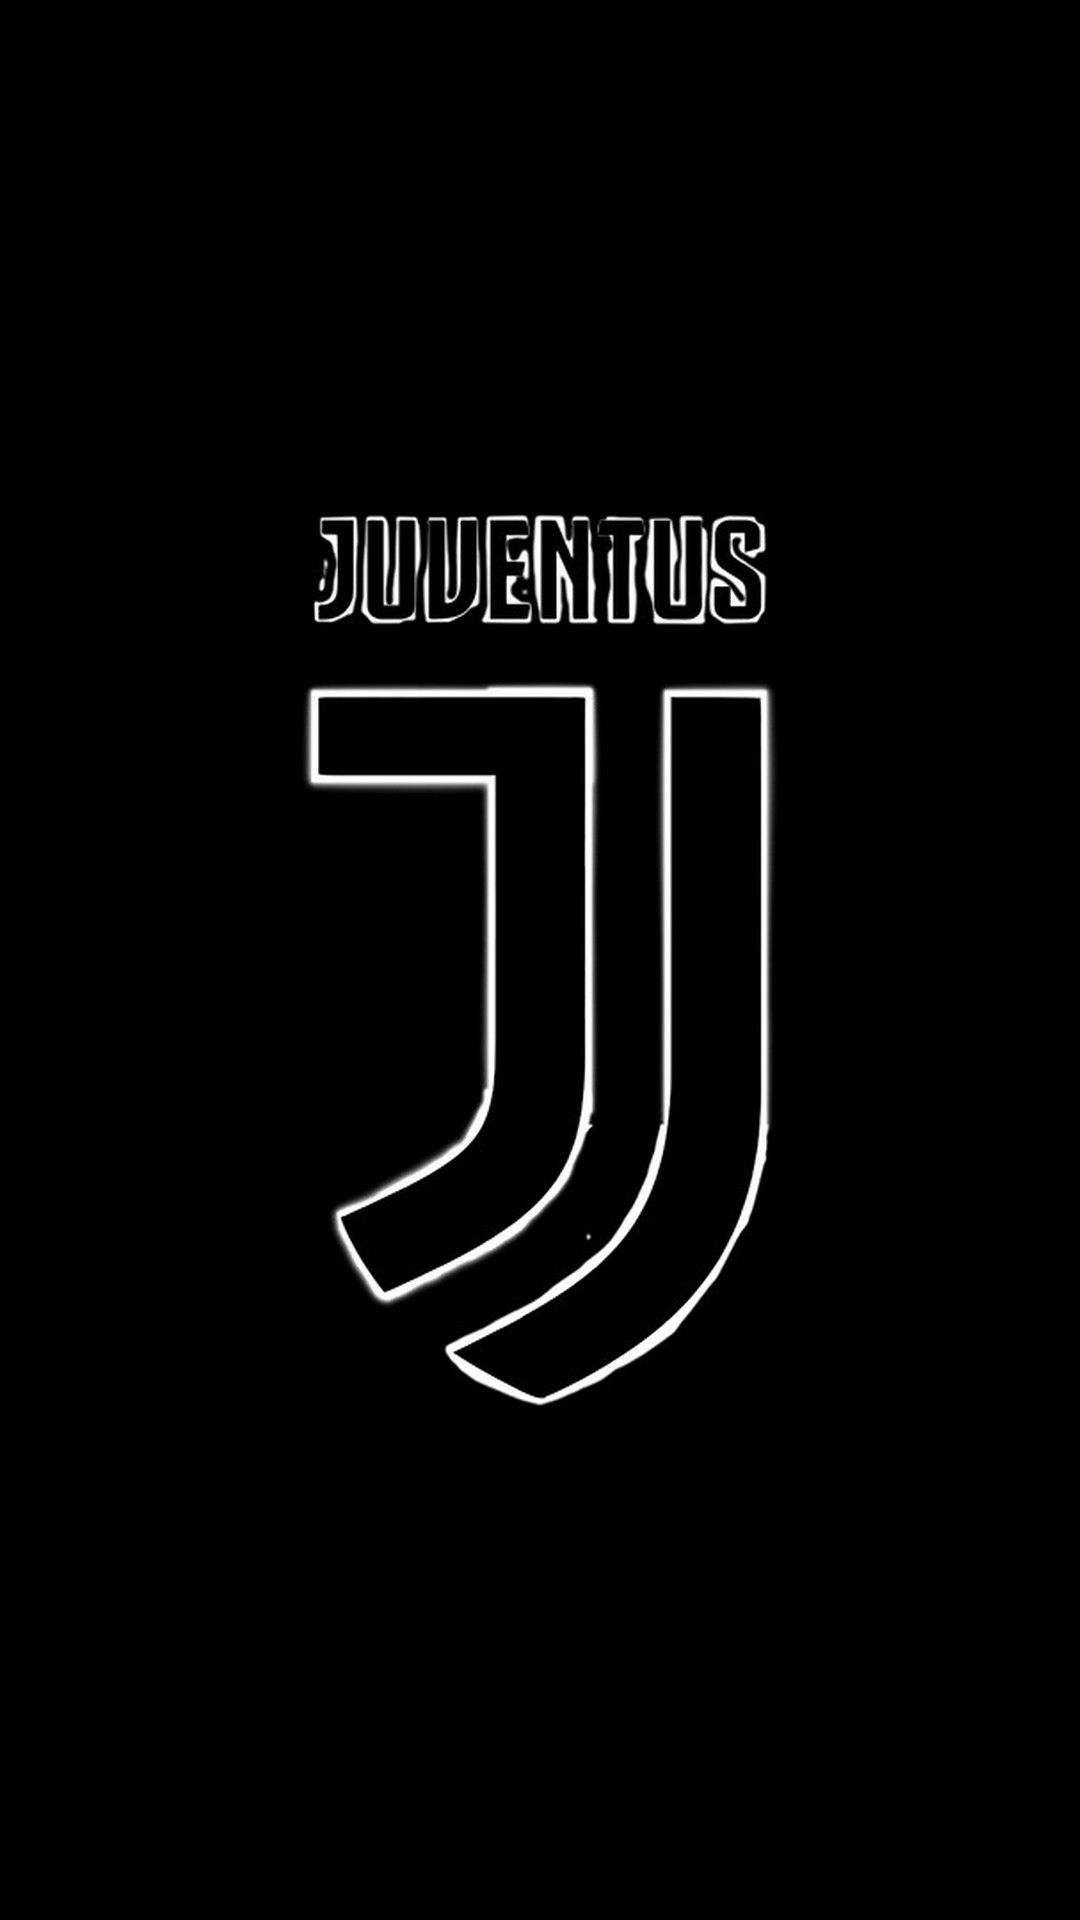 Iphone Wallpaper Hd Juventus Juventus Wallpapers Football Wallpaper Juventus